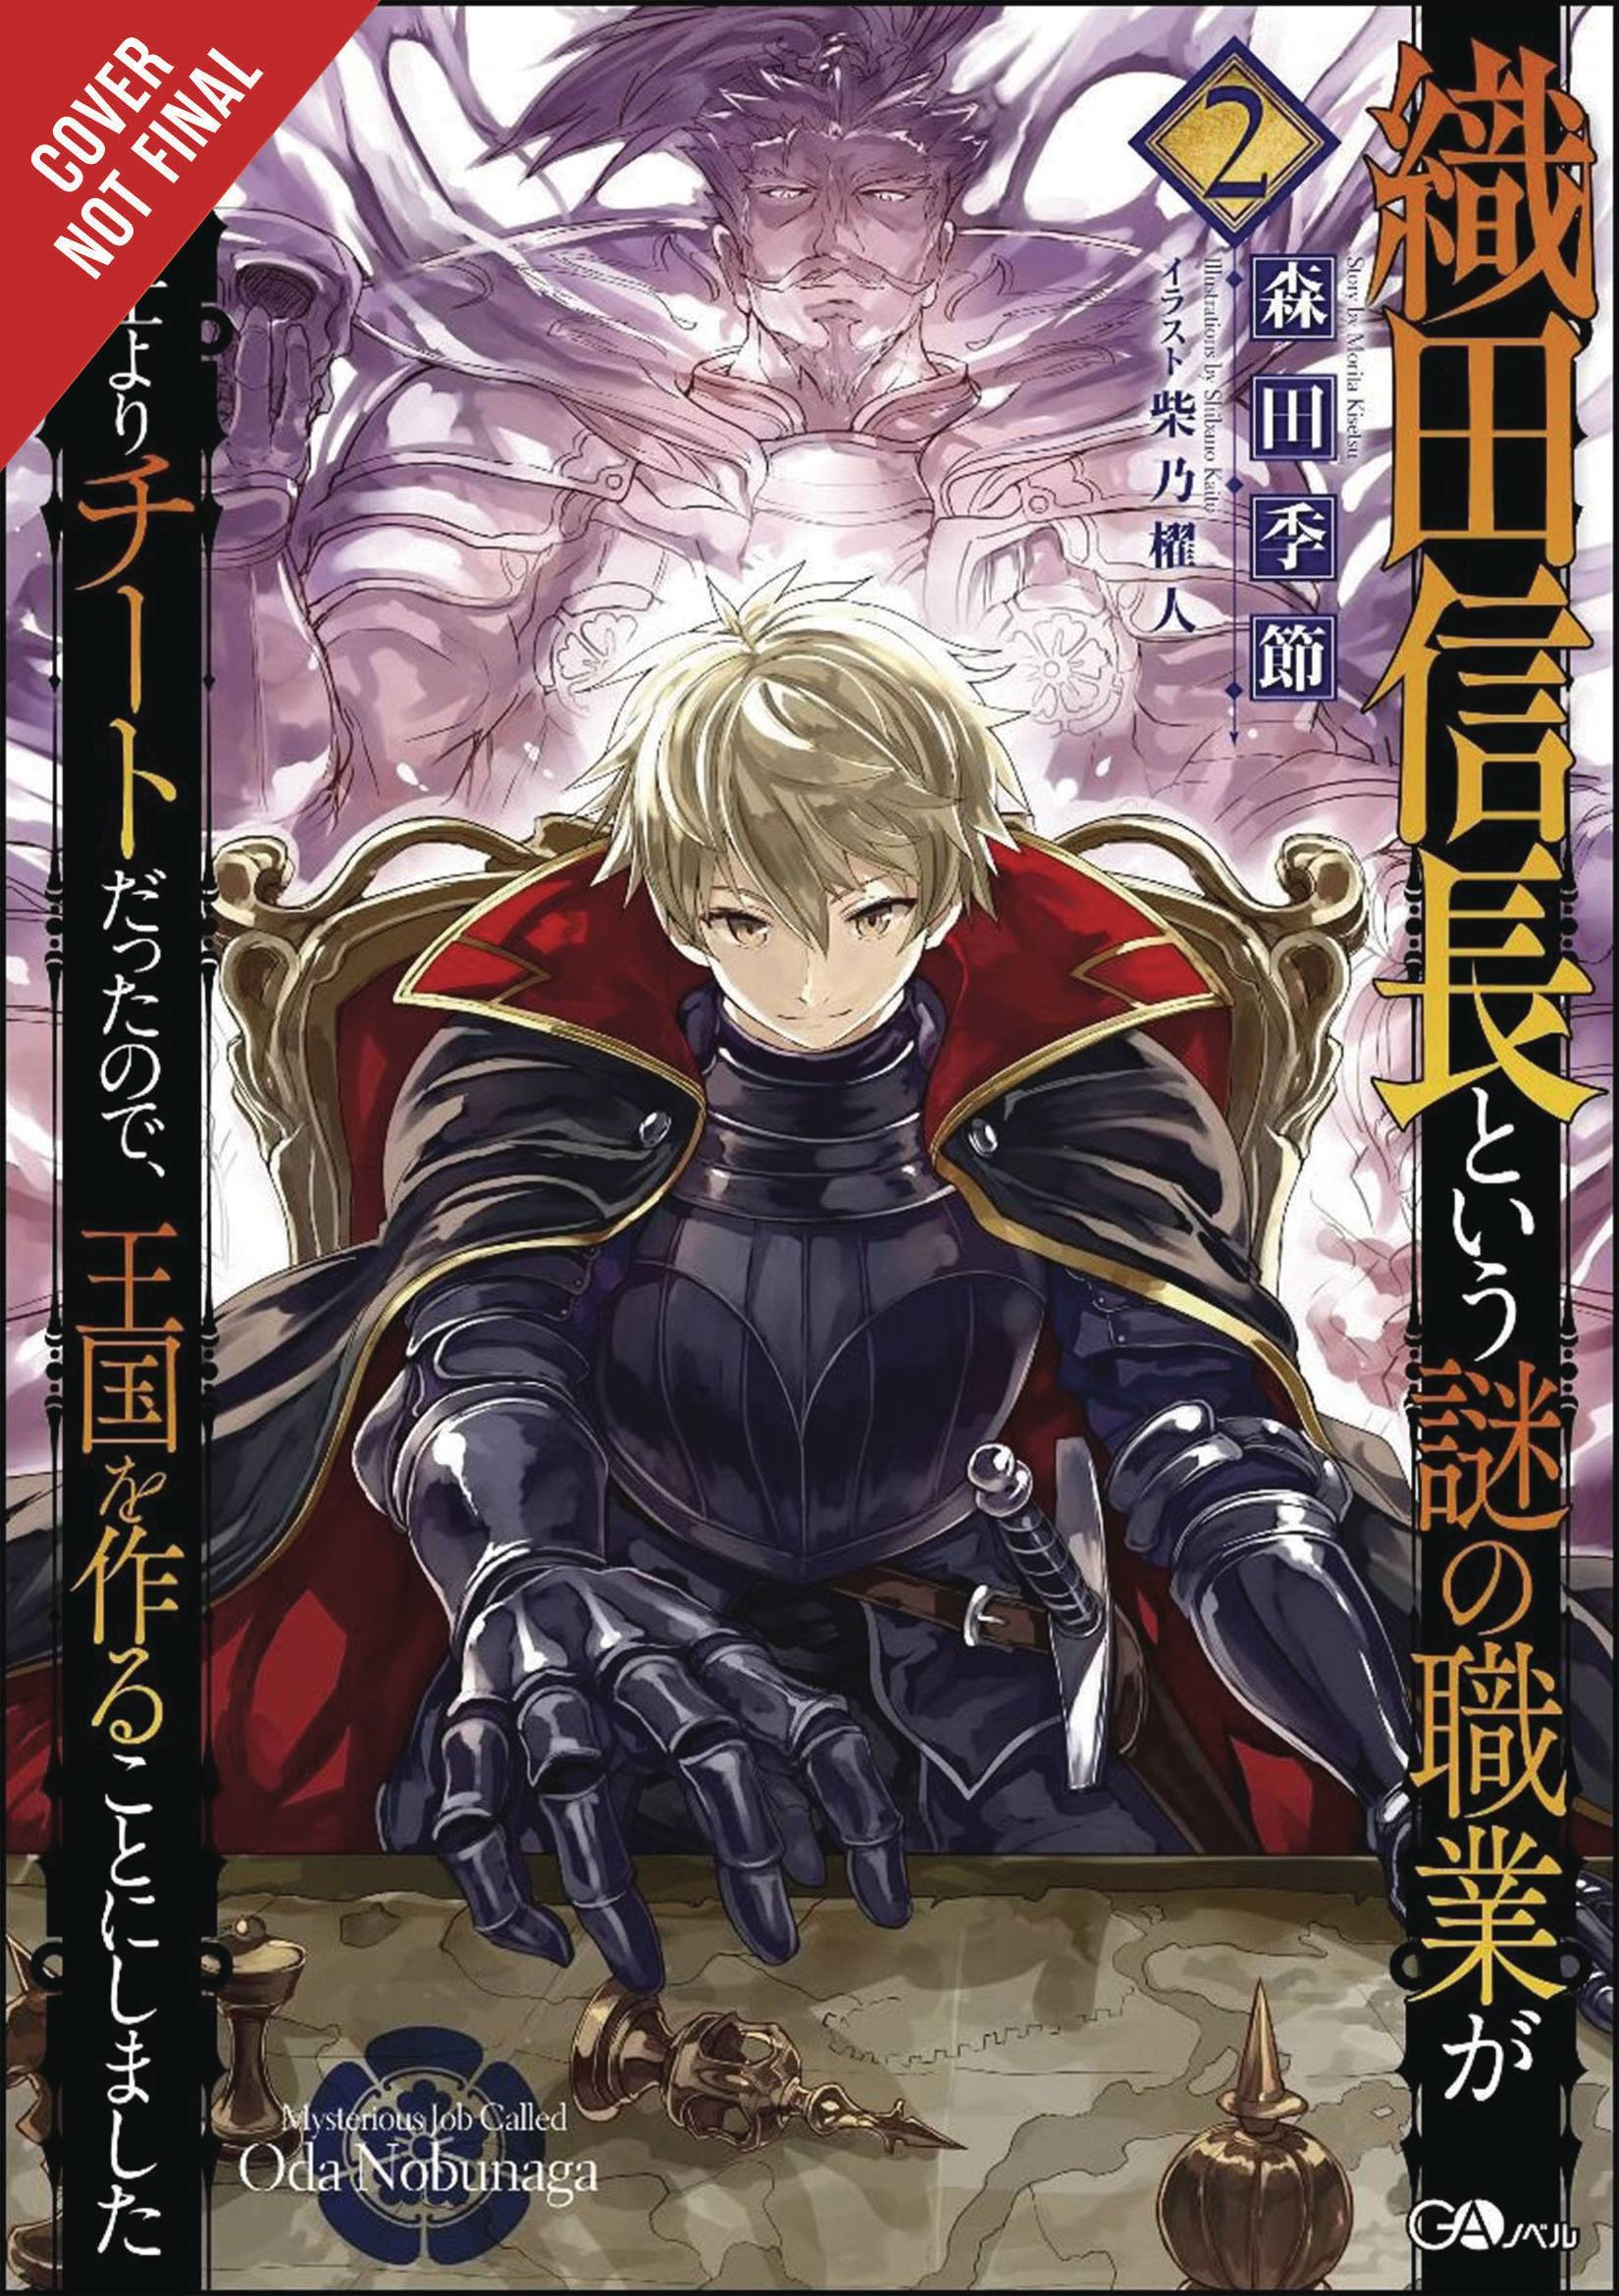 MYSTERIOUS JOB CALLED ODA NOBUNAGA LIGHT NOVEL SC 02